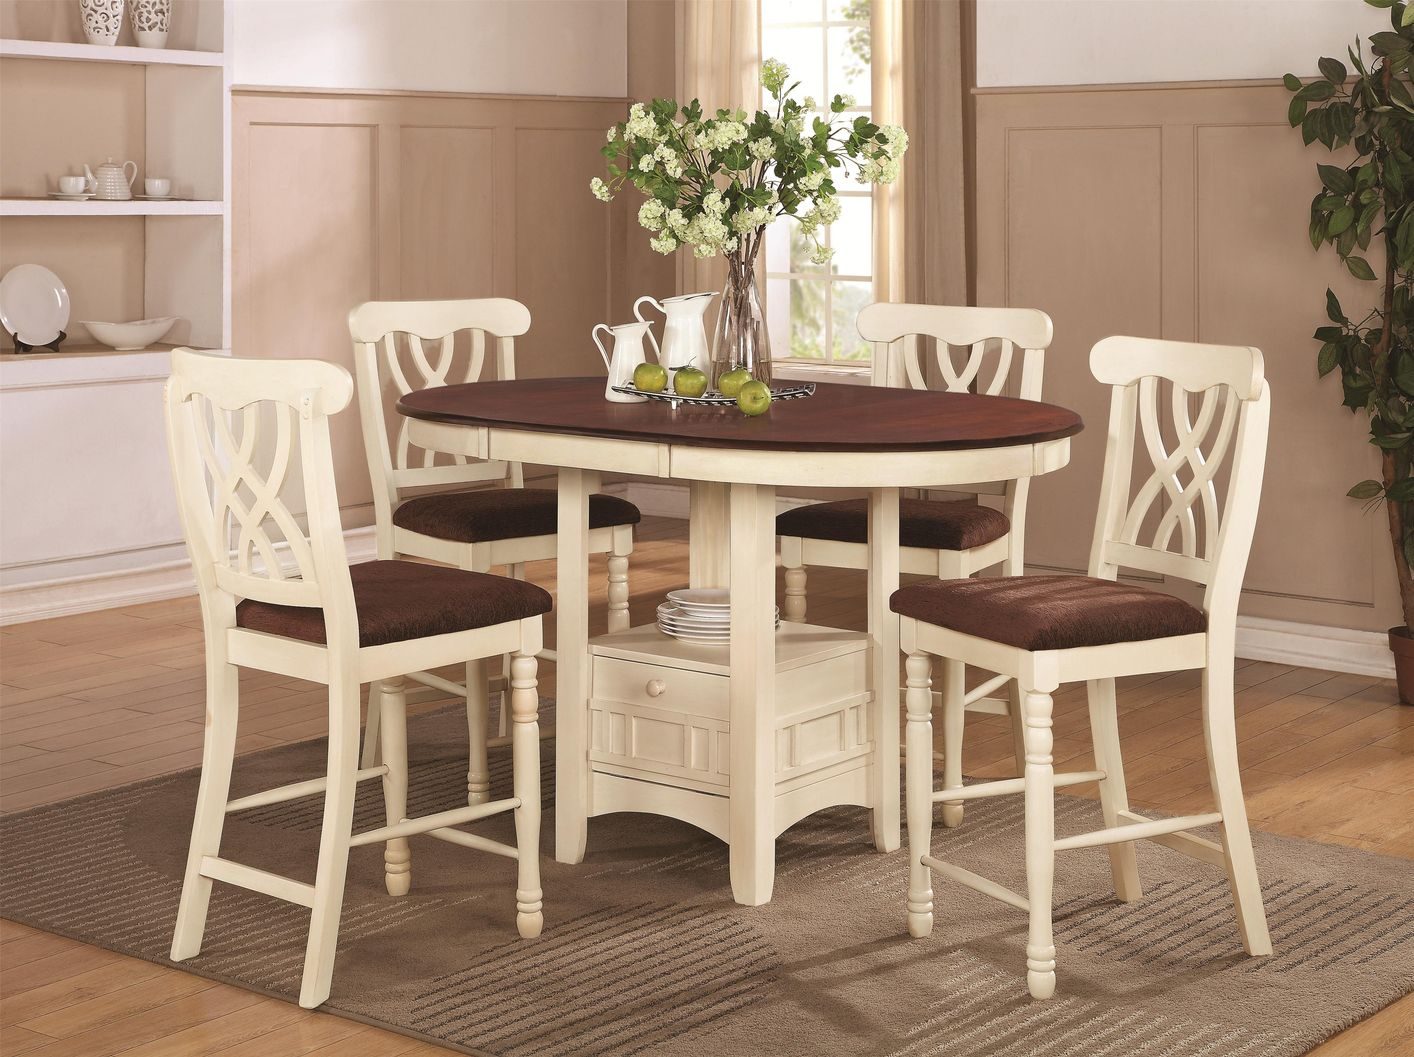 Inch White Distressed Kitchen Table